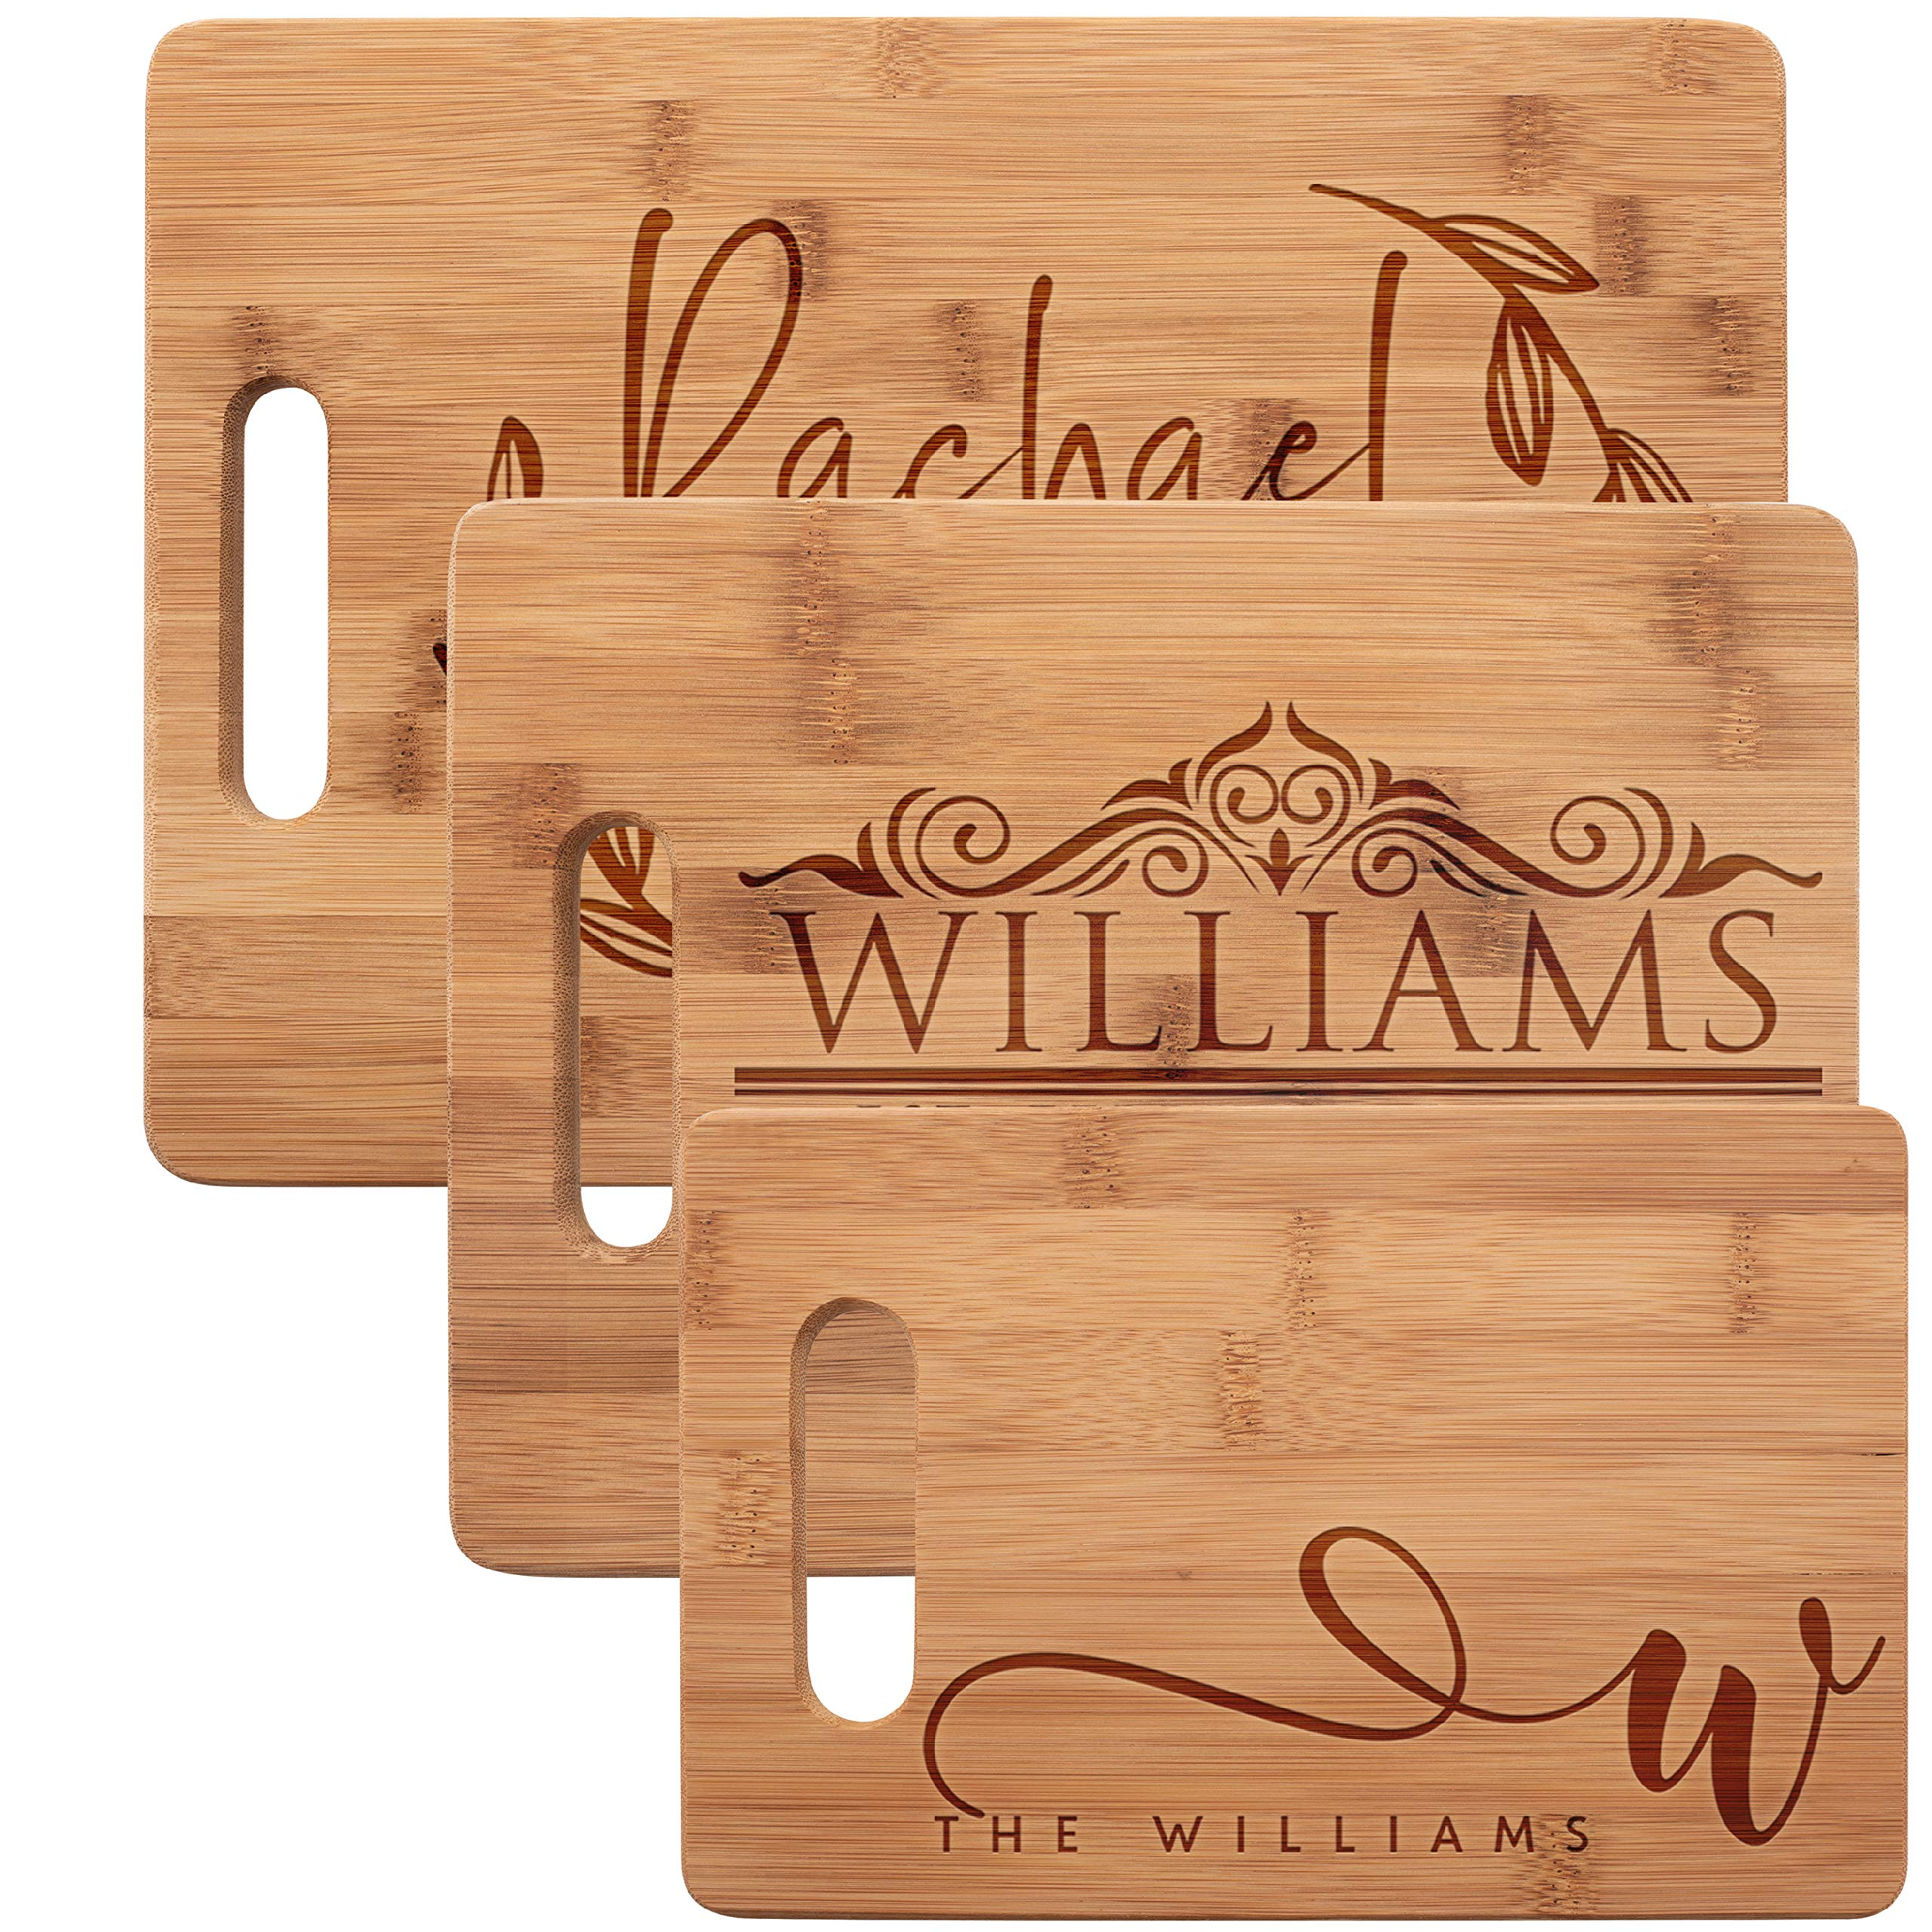 Personalized Cutting Board, Bamboo Cutting Board - Personalized Gifts - Wedding Gifts for the Couple, Engagement Gifts, Gift for Parents, Real Estate Agent Closing Gifts by Be Burgundy